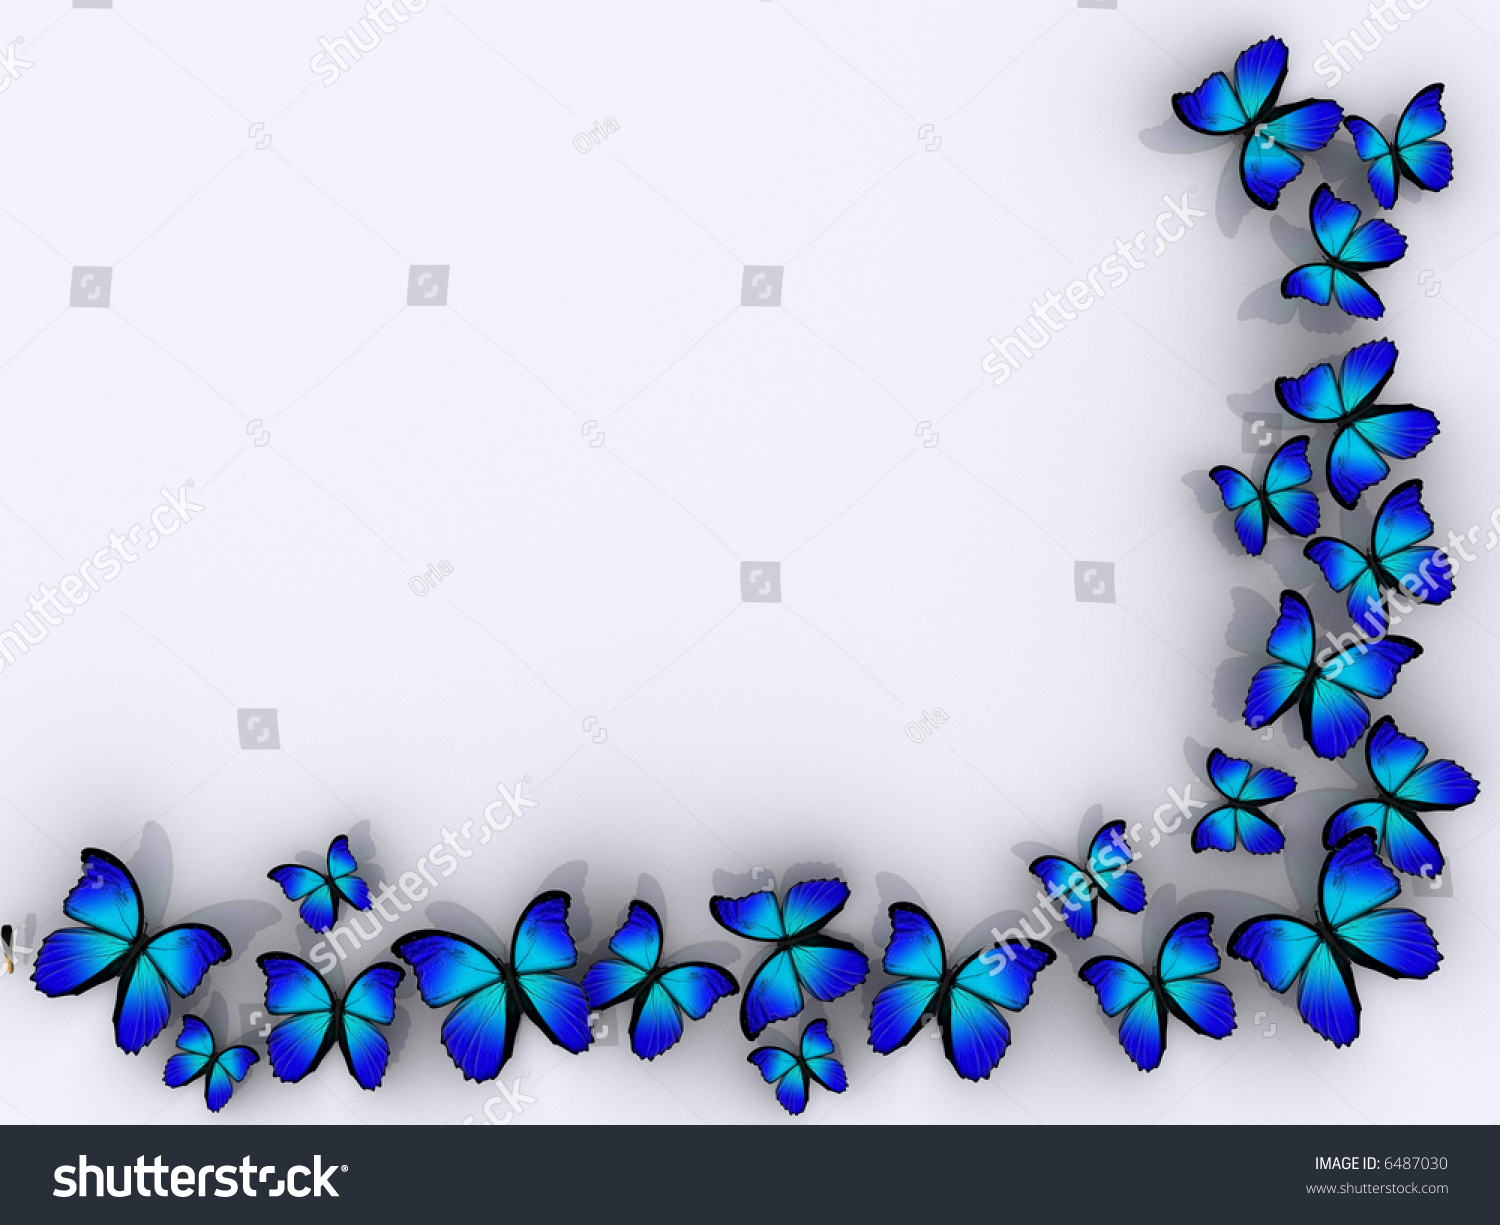 Butterfly Frame On White Background Rendered Stock Illustration ...